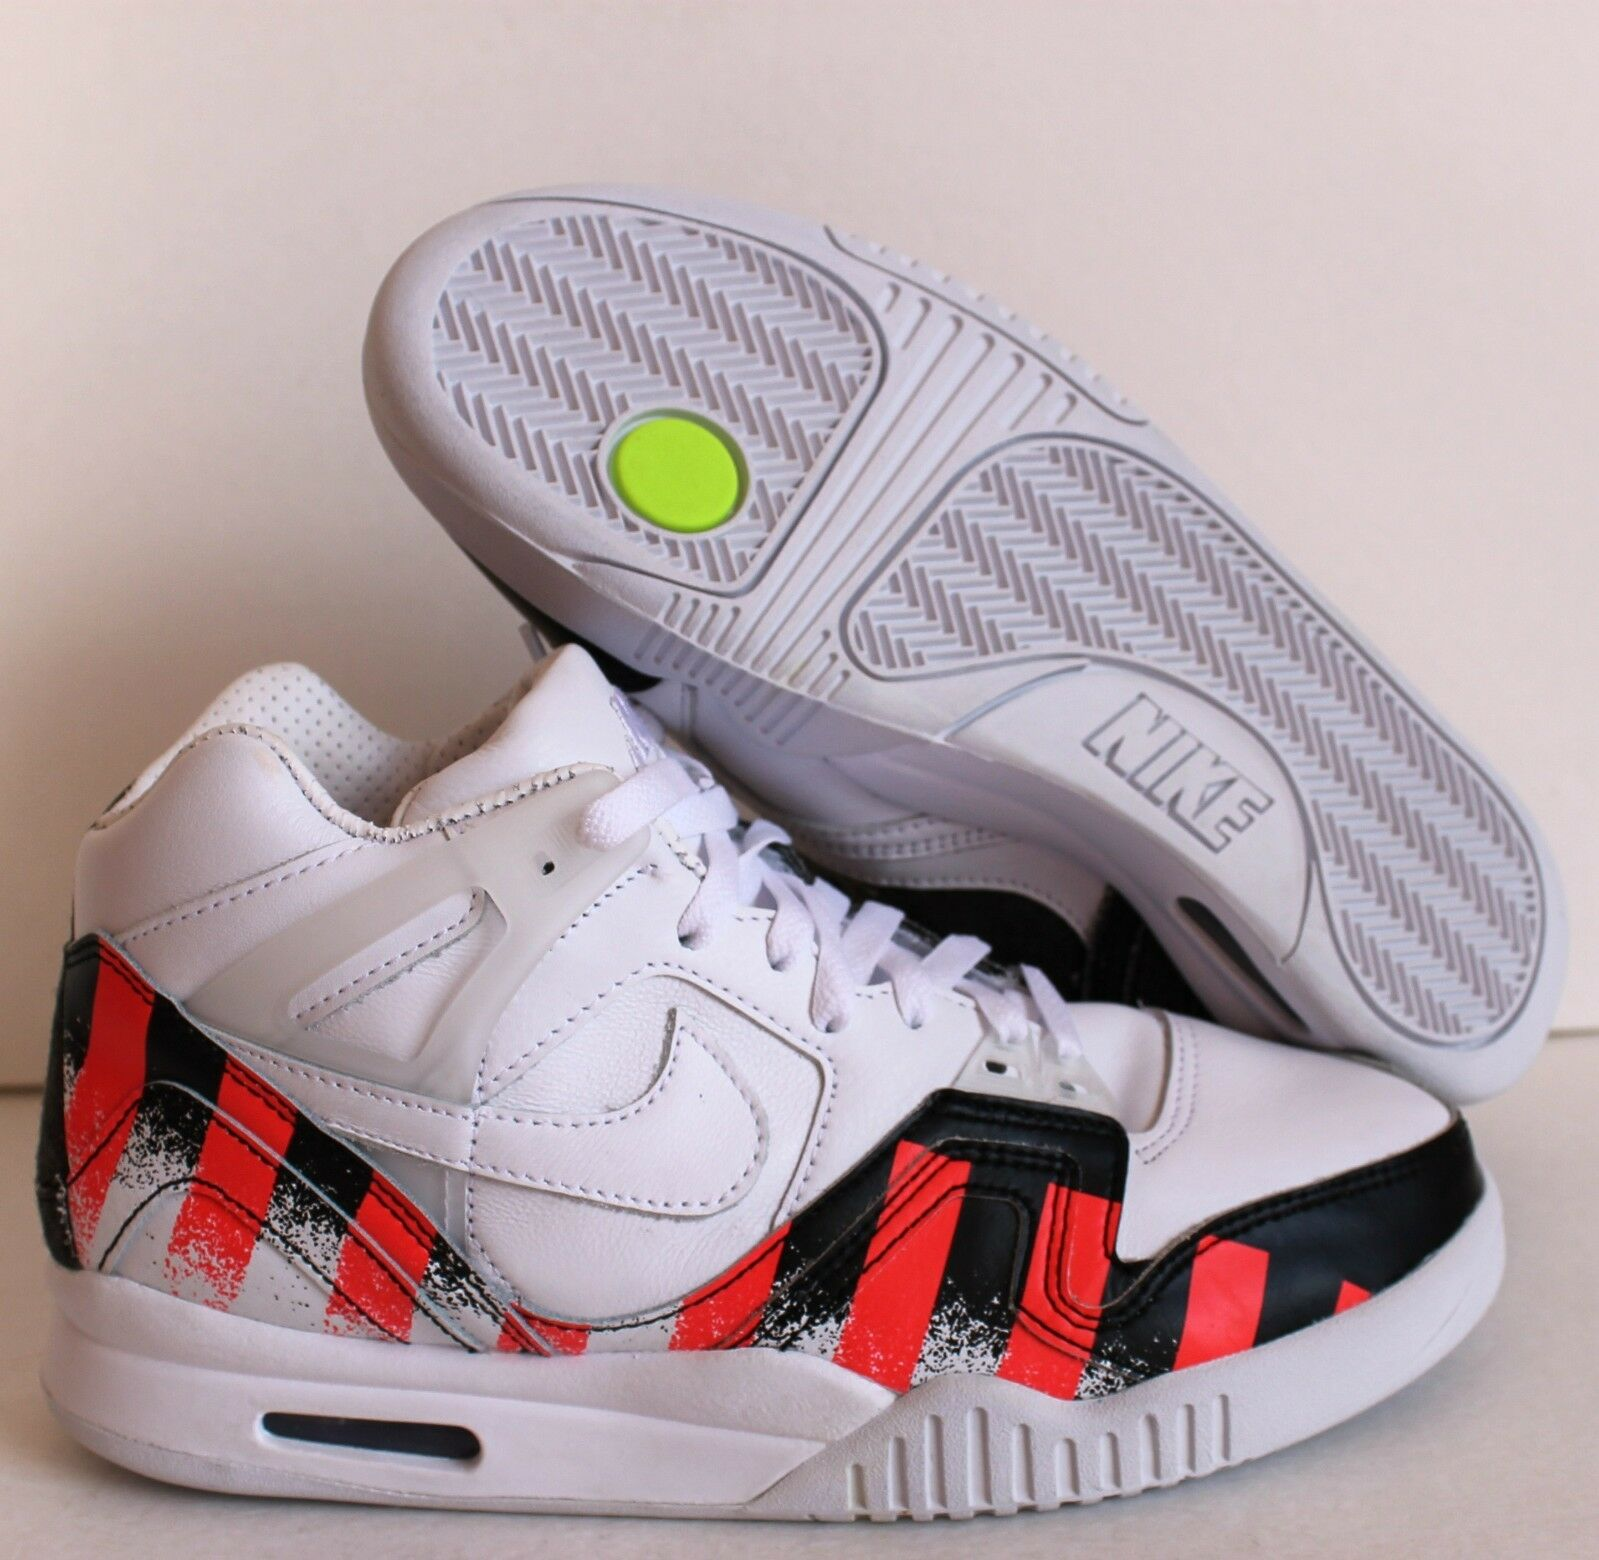 NIKE AIR TECH CHALLENGE II FRENCH OPEN WHITE LASER CRIMSON SZ 8 [621358-116]